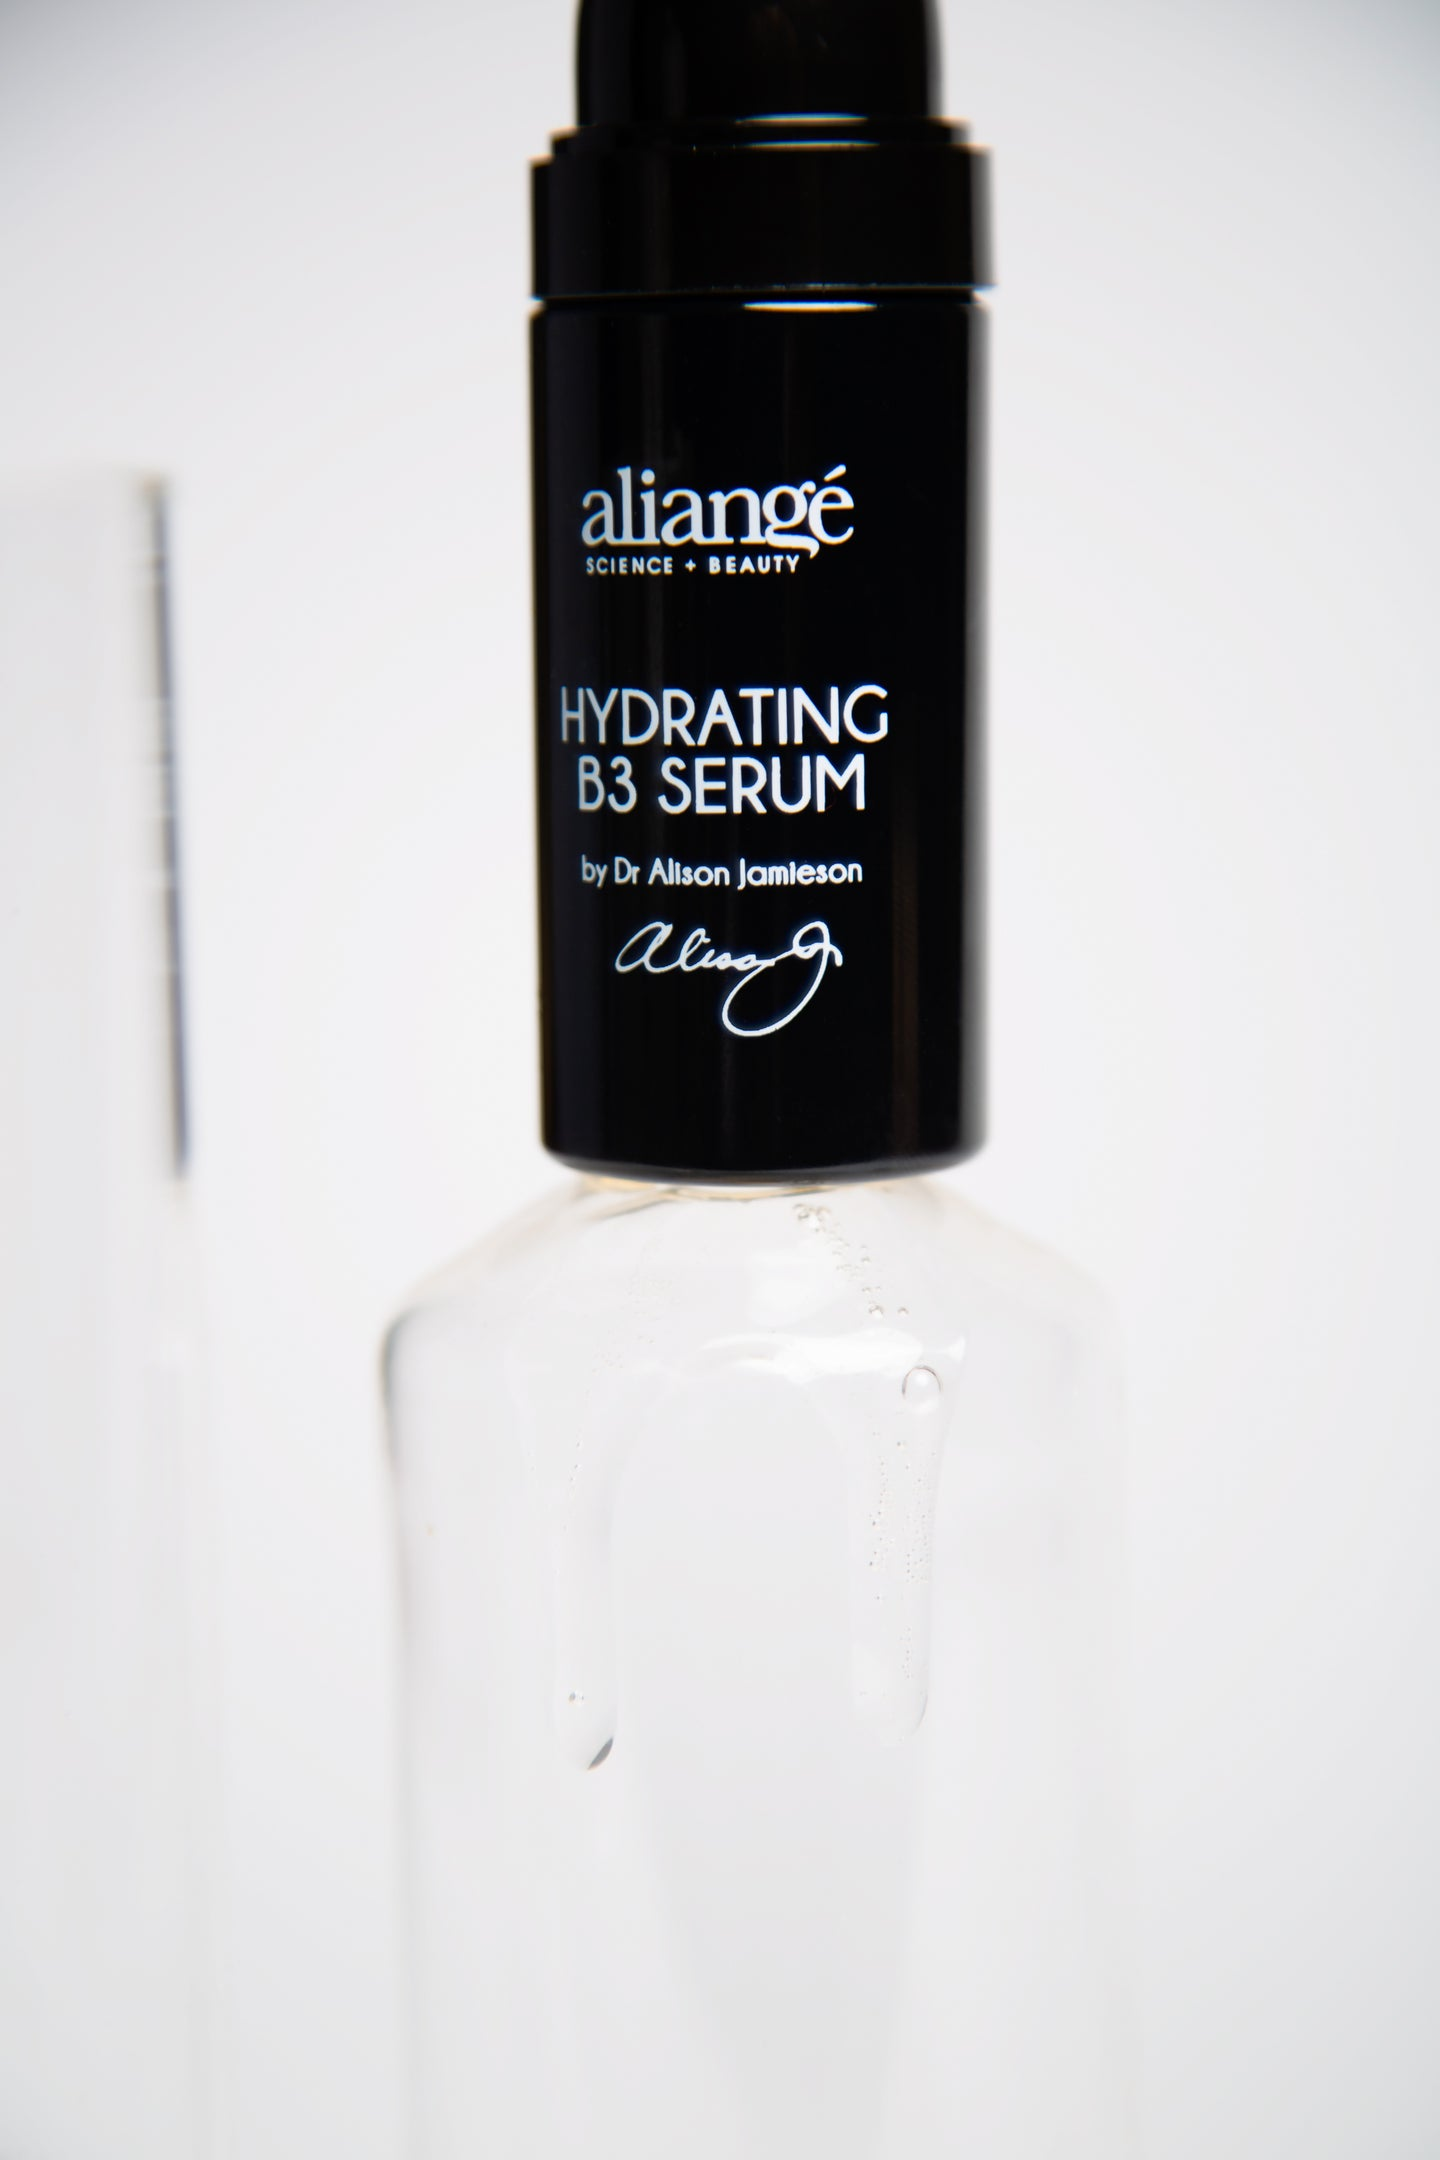 Hydrating B3 Serum